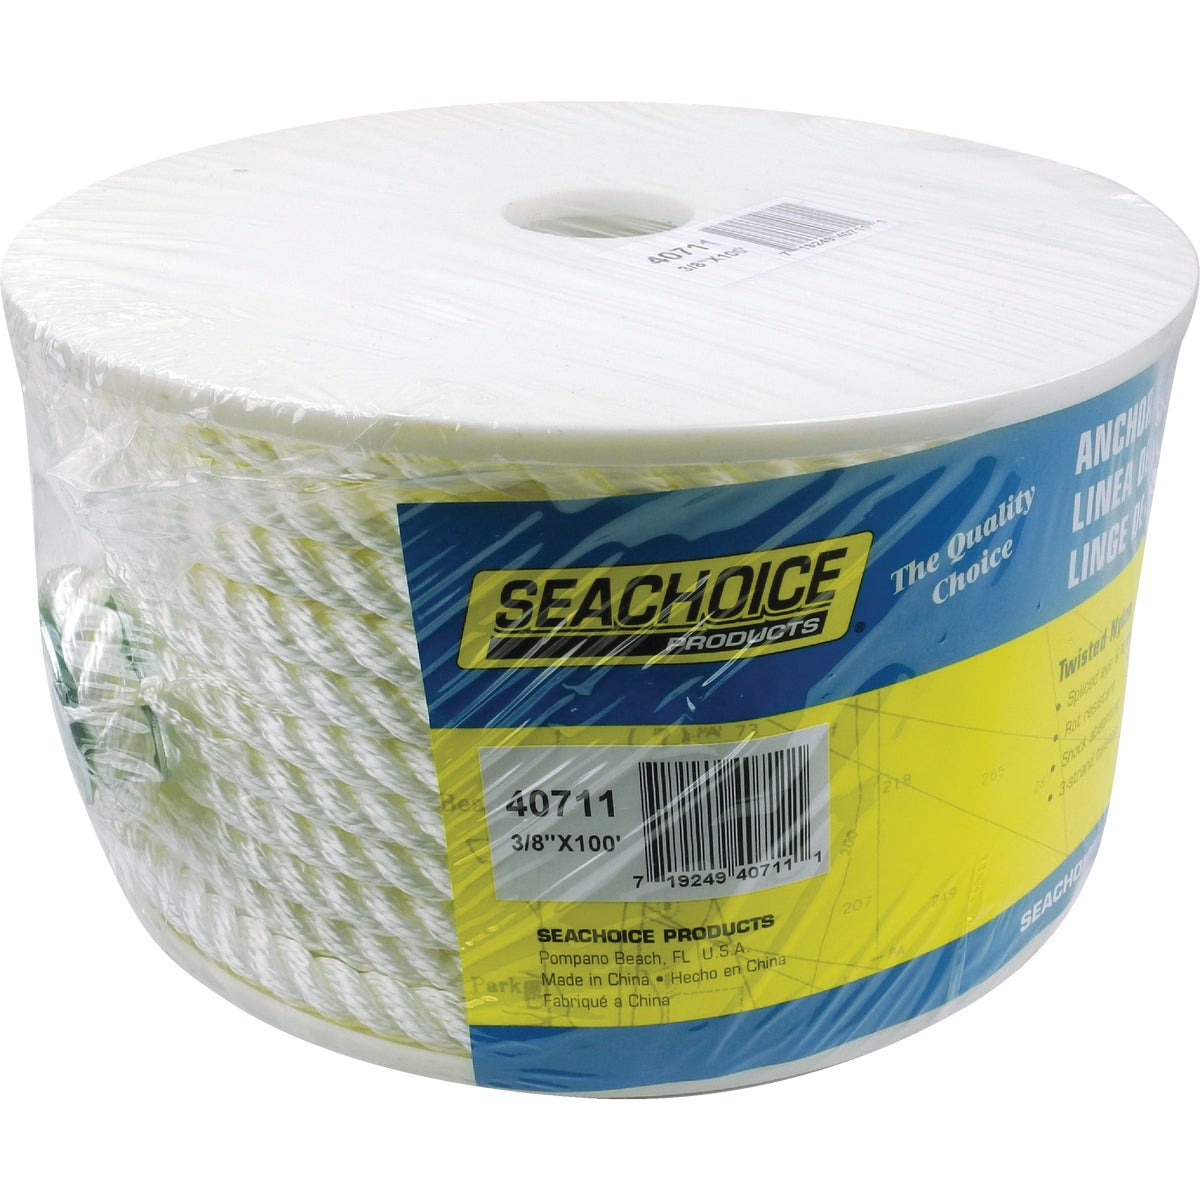 100' NYLON ANCHOR LINE - 40711 by Seachoice Prod